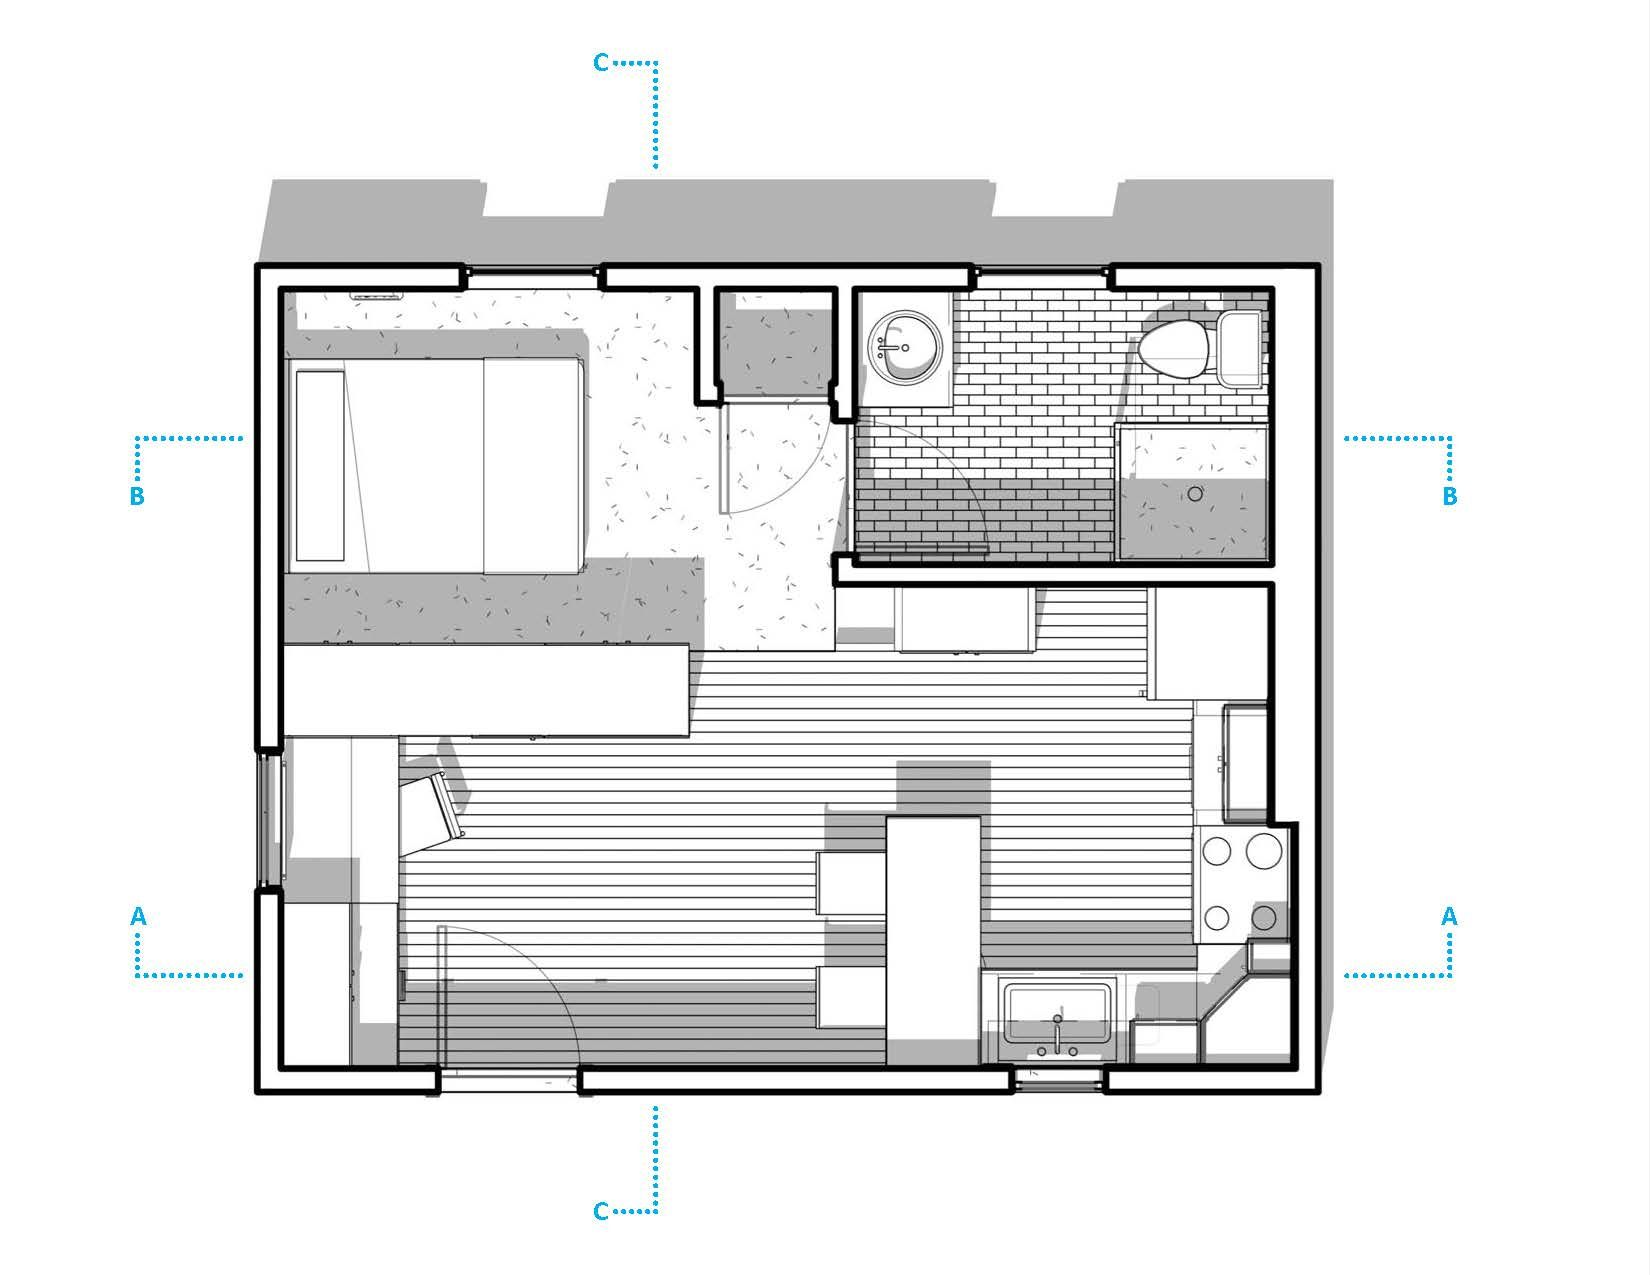 300 Sq Ft Apartment Layout Mulberry 300 Sq Ft Studio Apartment Honorable Mention Studio Apartment Floor Plans Apartment Floor Plans Apartment Layout